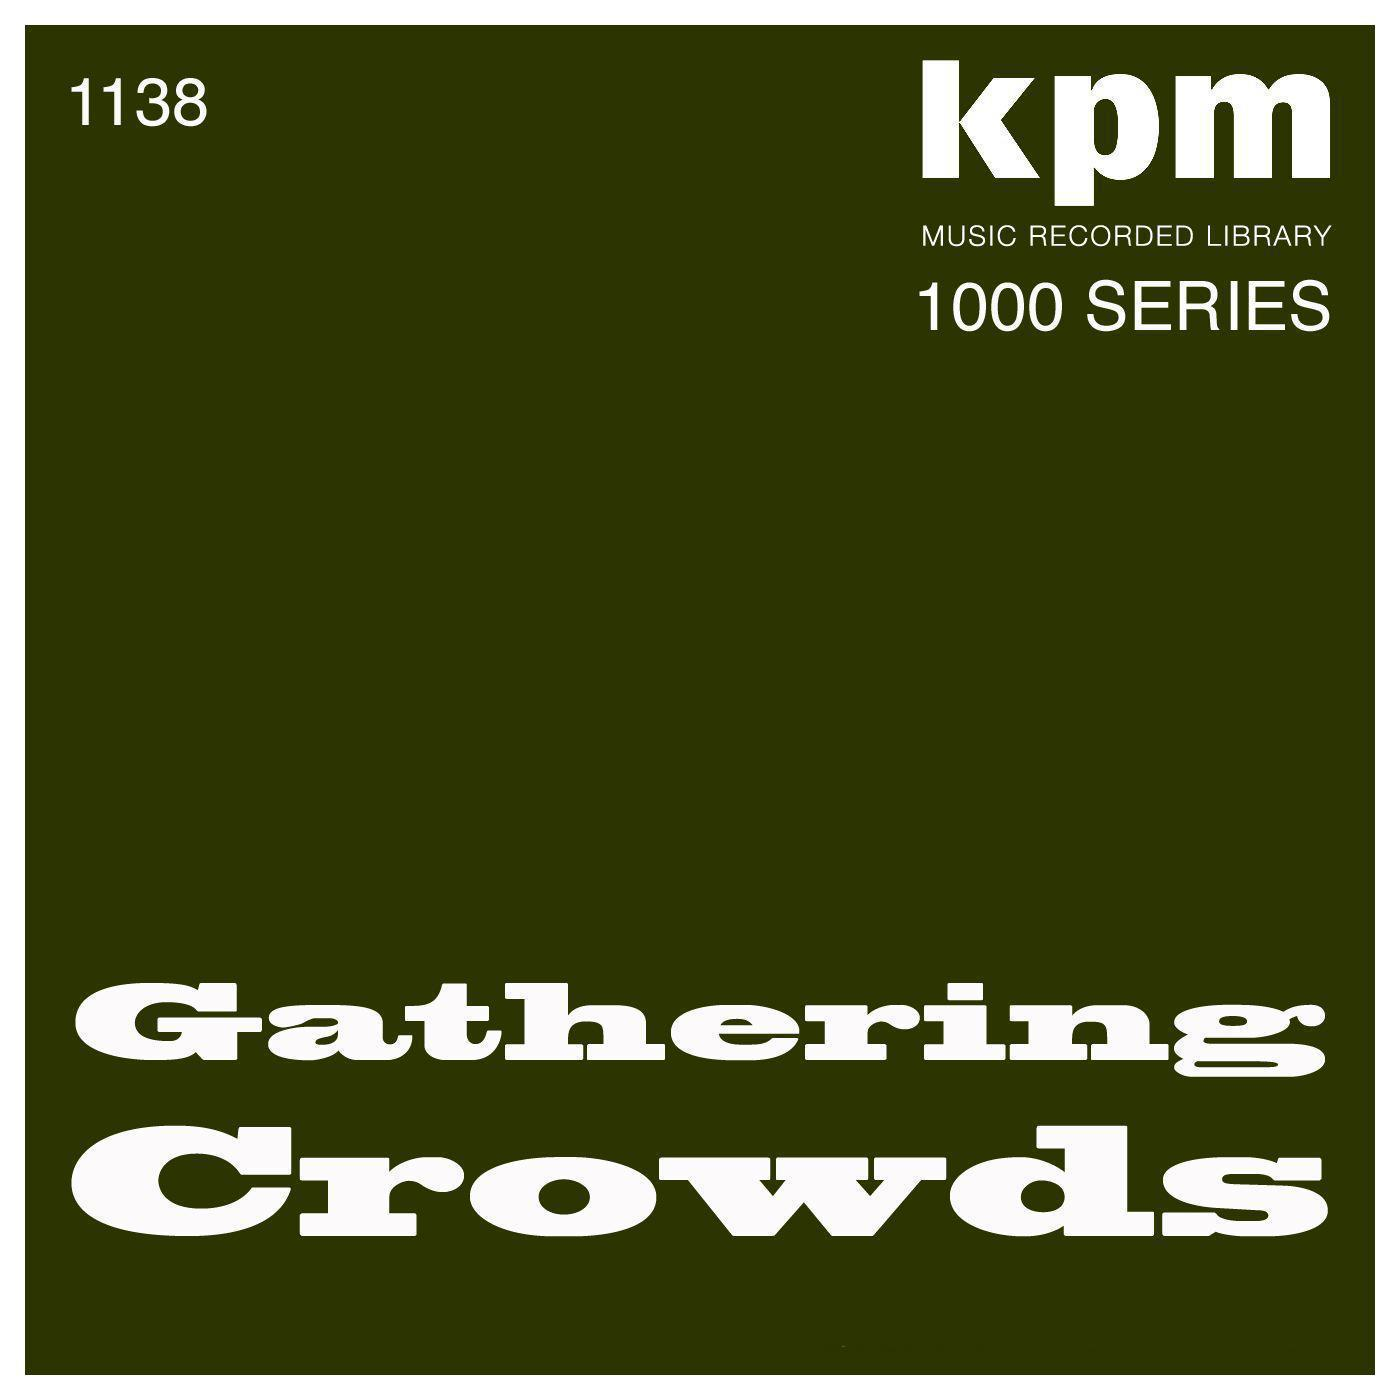 KPM 1000 Series: Gathering Crowds